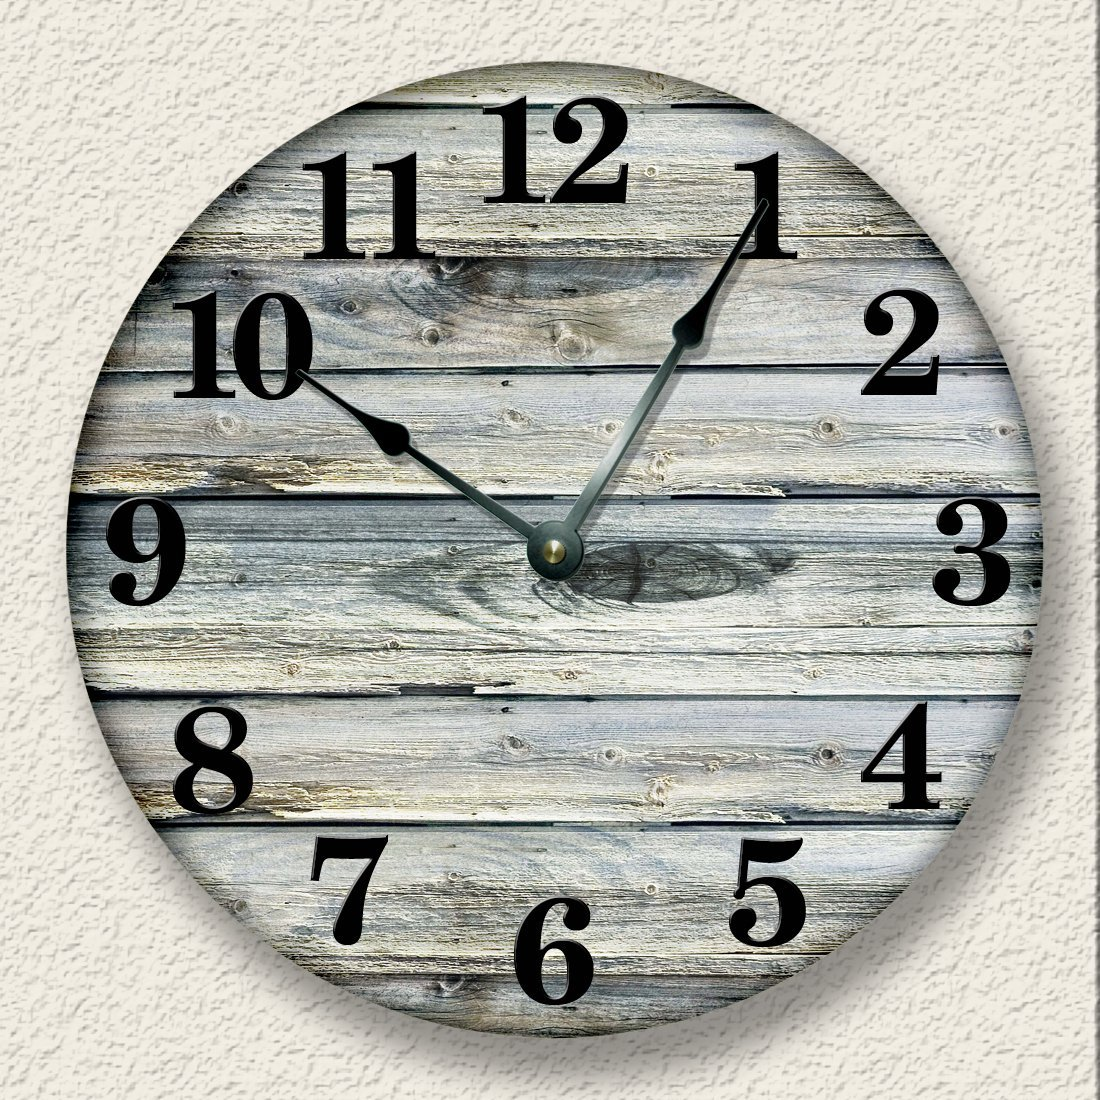 Rustic Wall Clock Weathered Boards Image Beach Sand Tan Cabin Country Decor